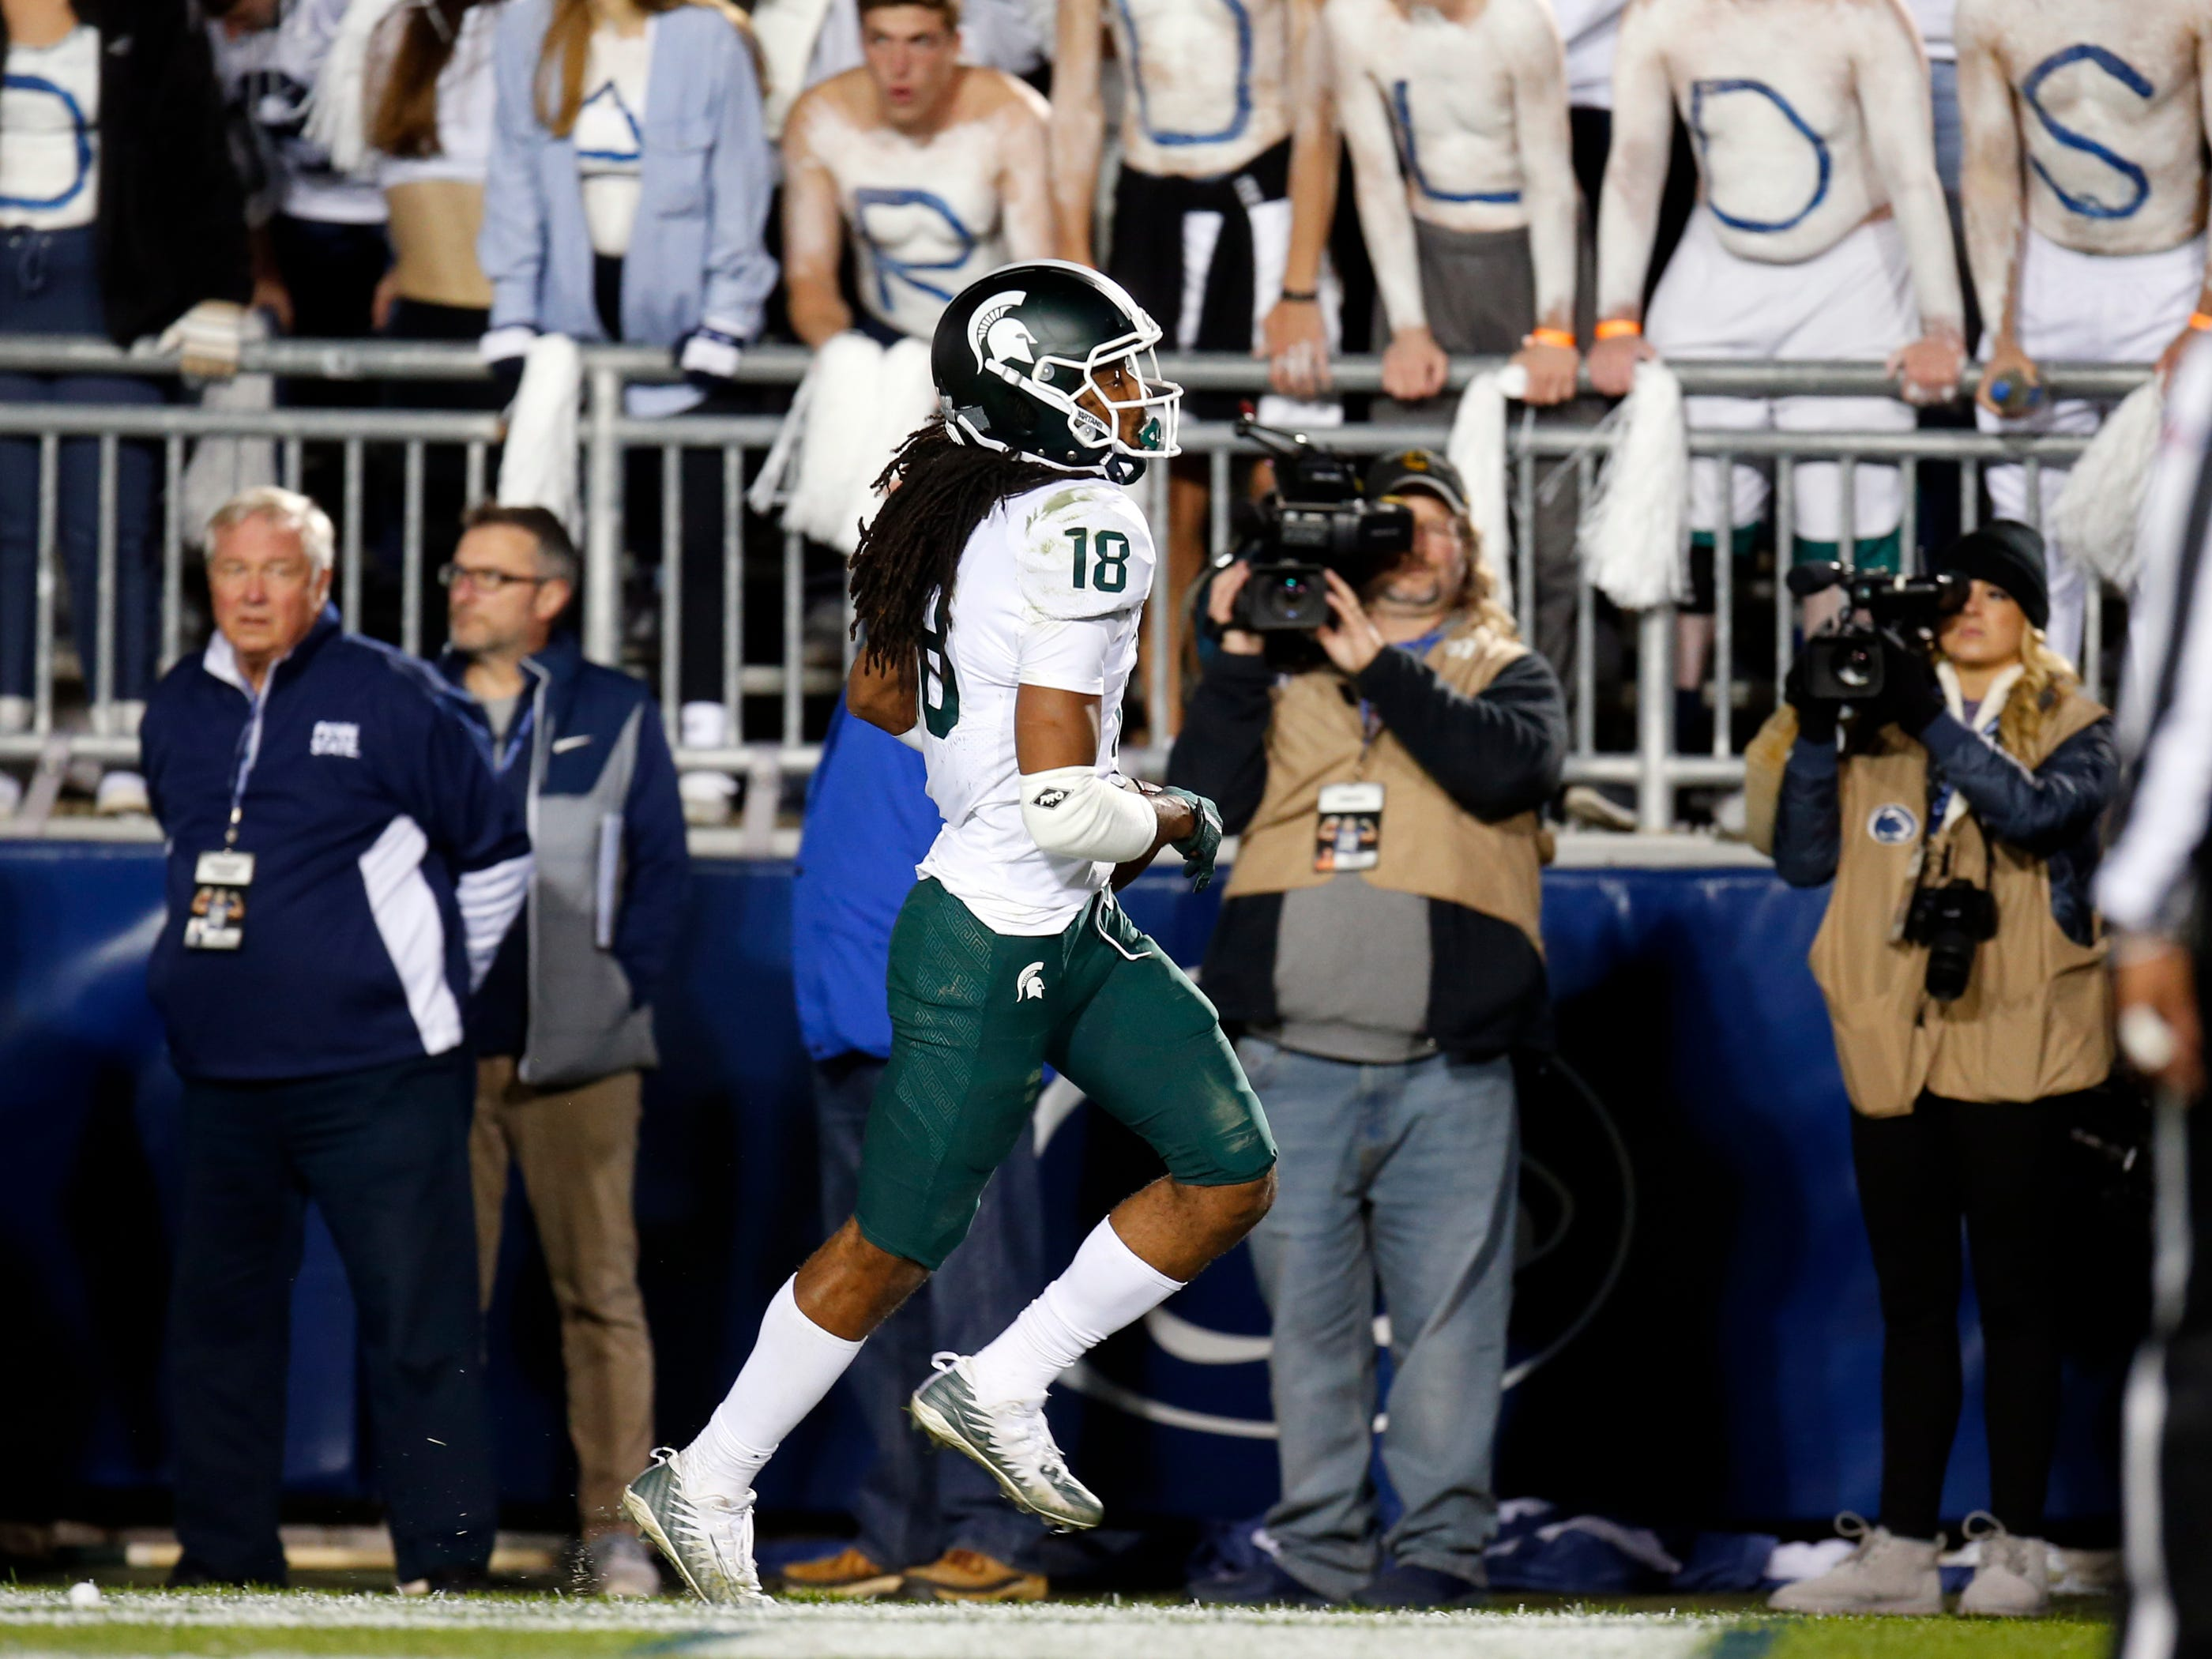 Felton Davis III #18 of the Michigan State Spartans celebrates after catching a 25 yard touchdown pass in the fourth quarter against Amani Oruwariye #21 of the Penn State Nittany Lions on October 13, 2018 at Beaver Stadium in State College, Pennsylvania.